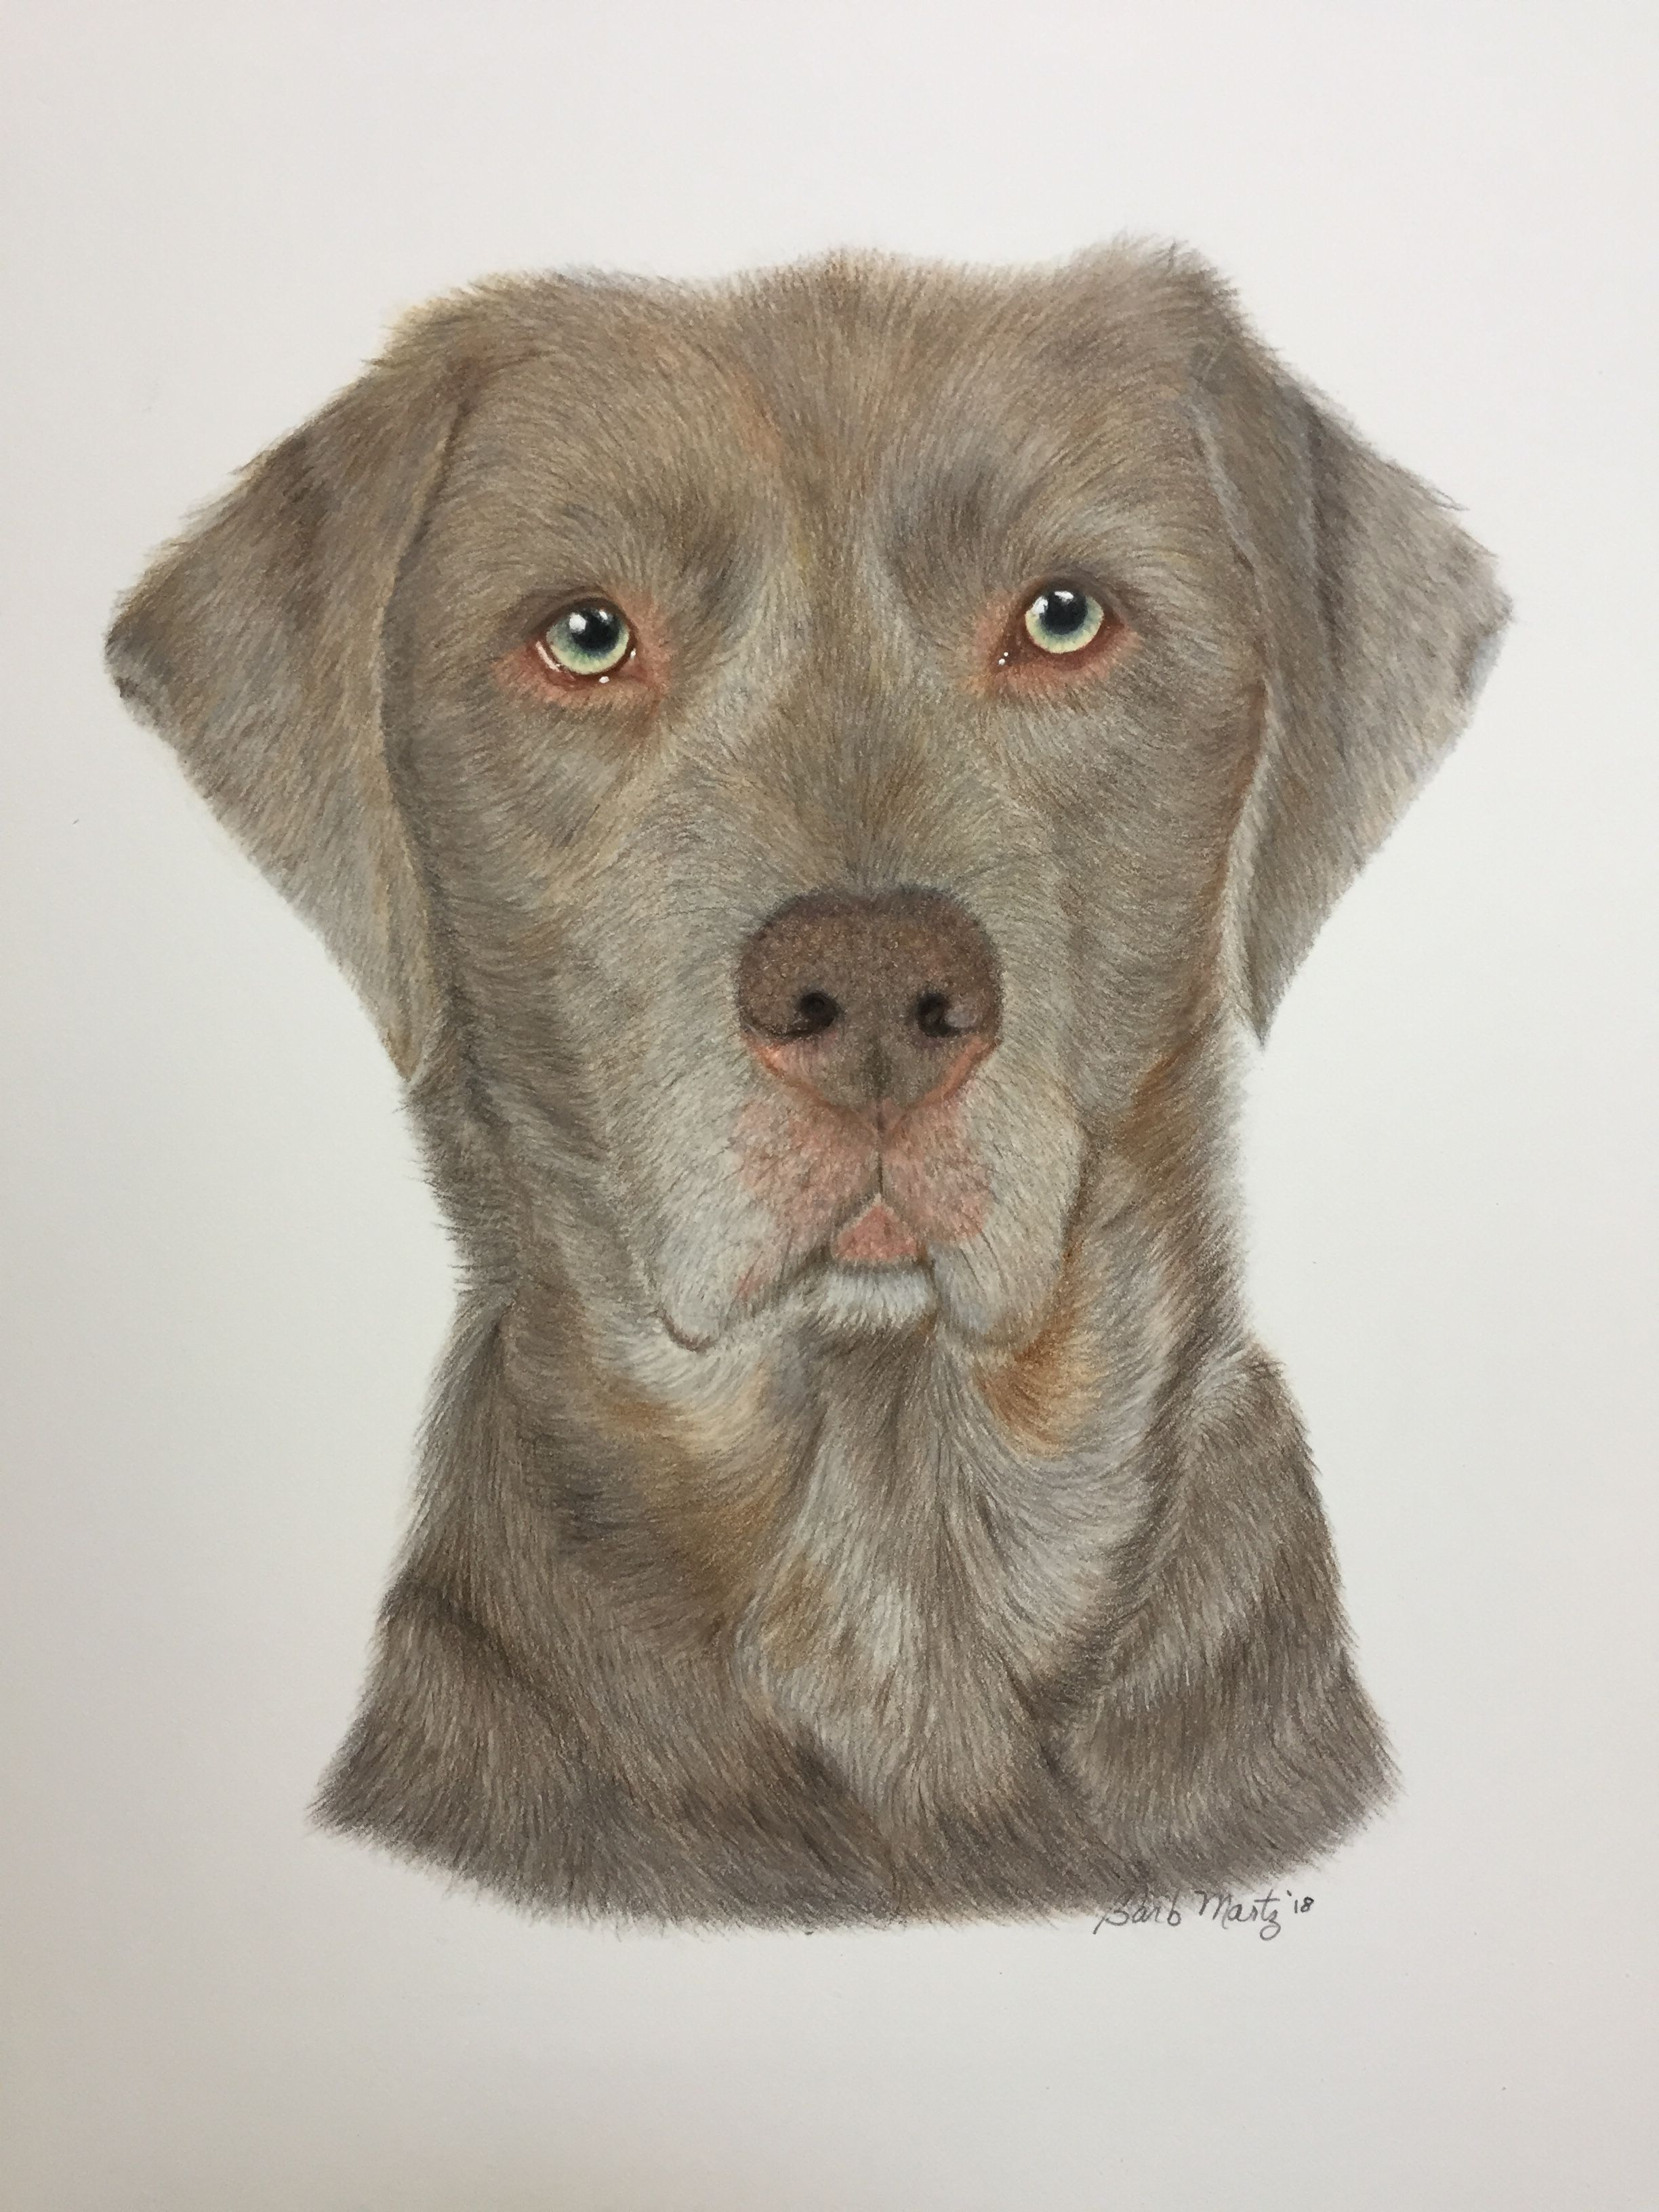 Zuckerbee A Service Dog My Drawings Pet Portraits Service Dogs